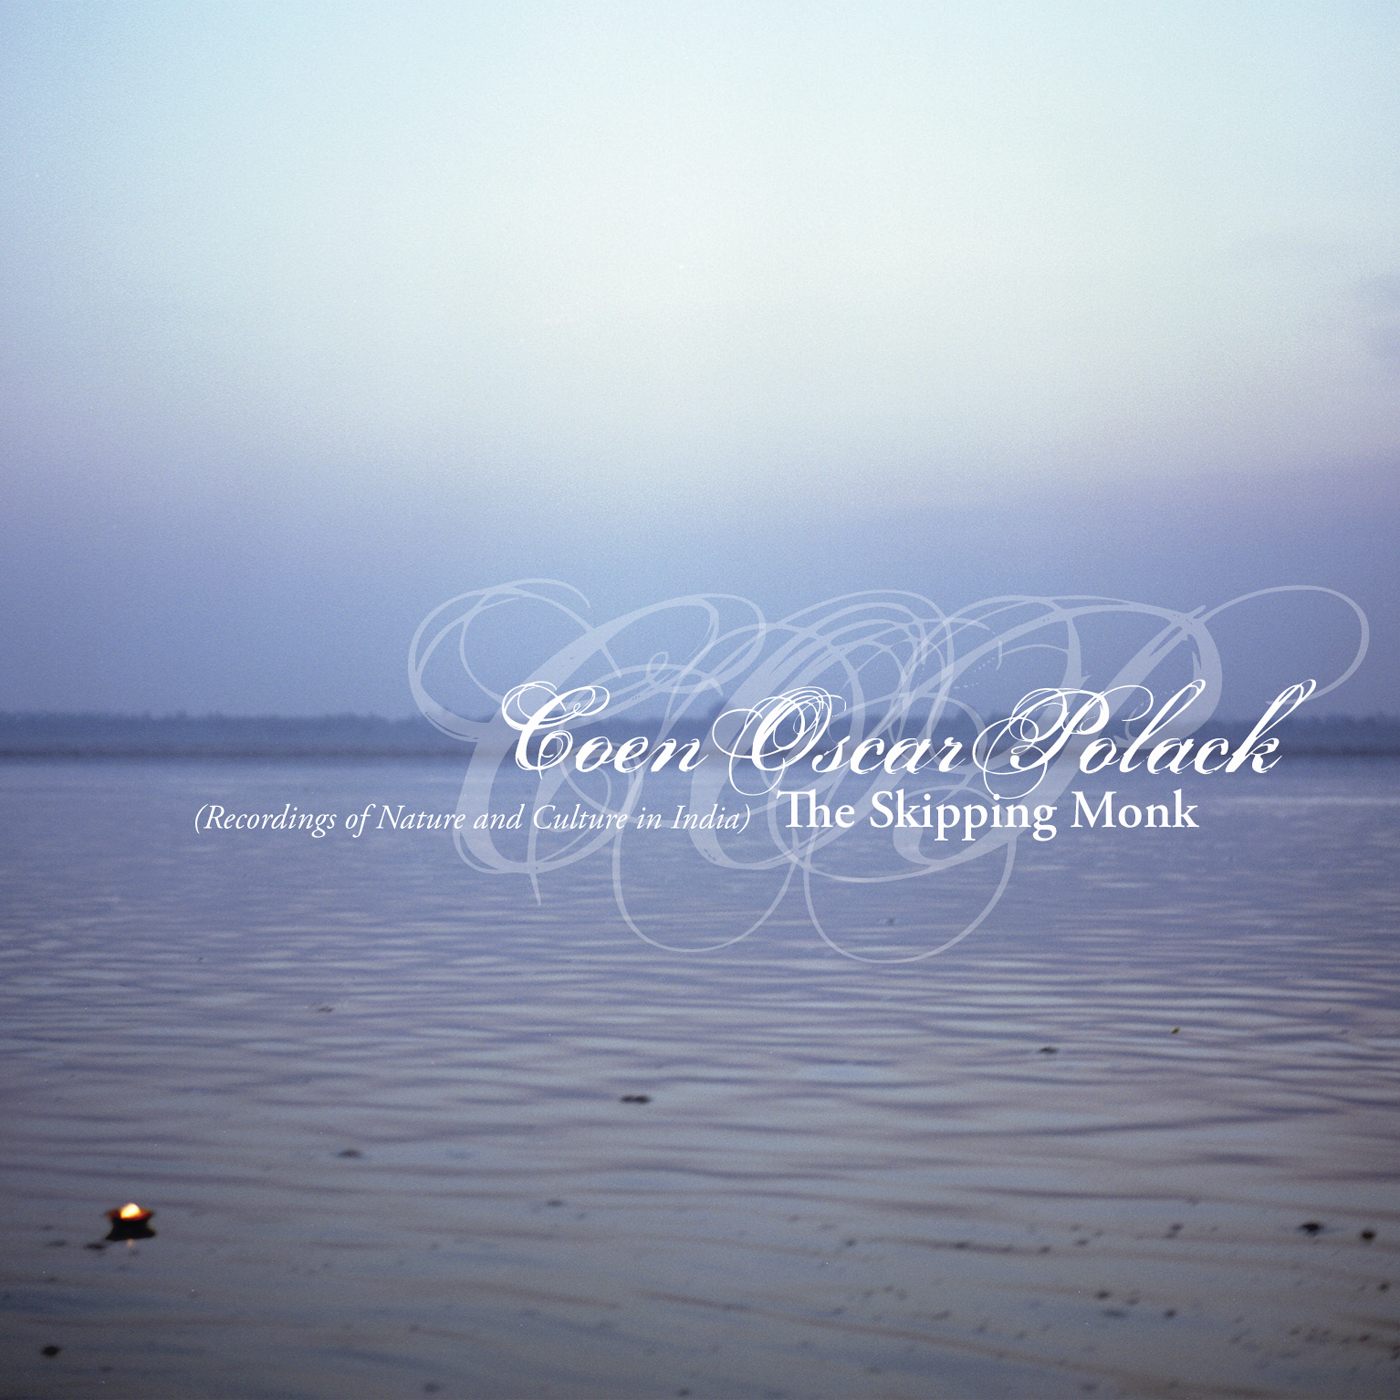 NM037: coen oscar polack - the skipping monk (recordings of nature and culture in india)